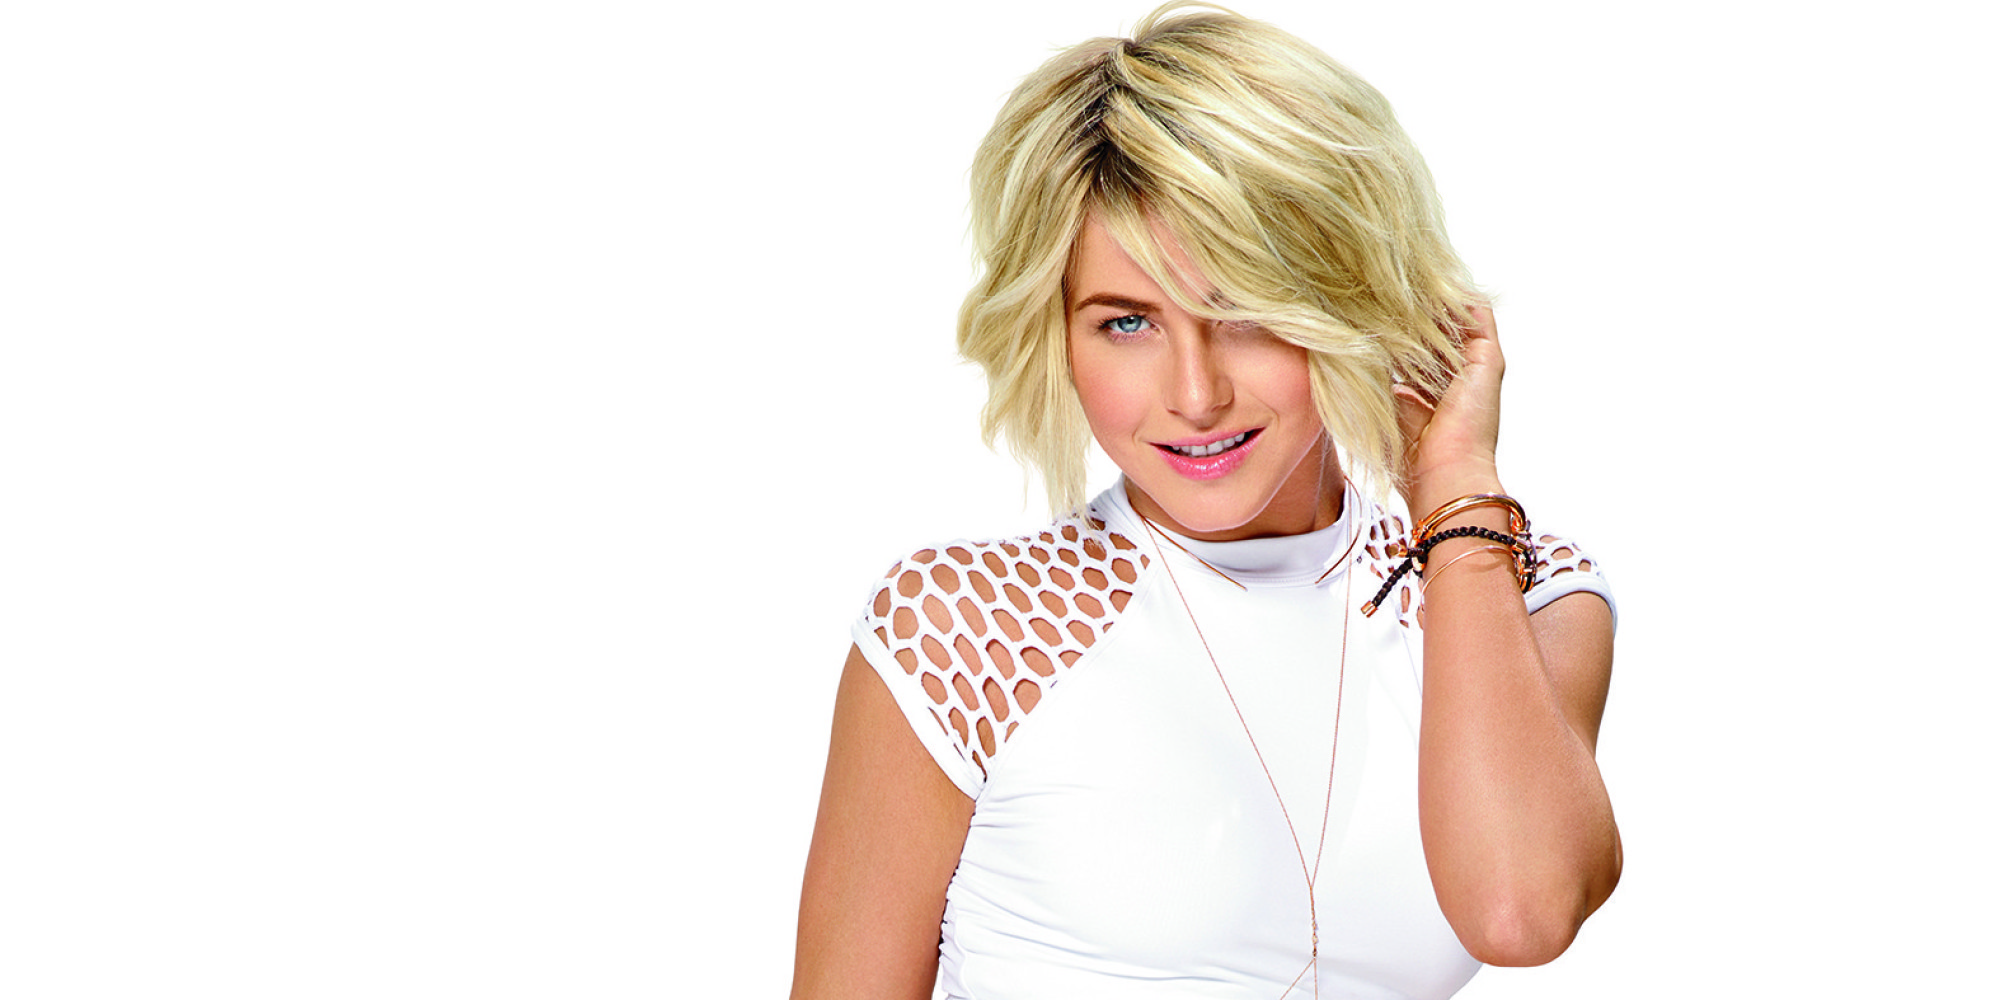 Julianne Hough Sexy Wallpapers